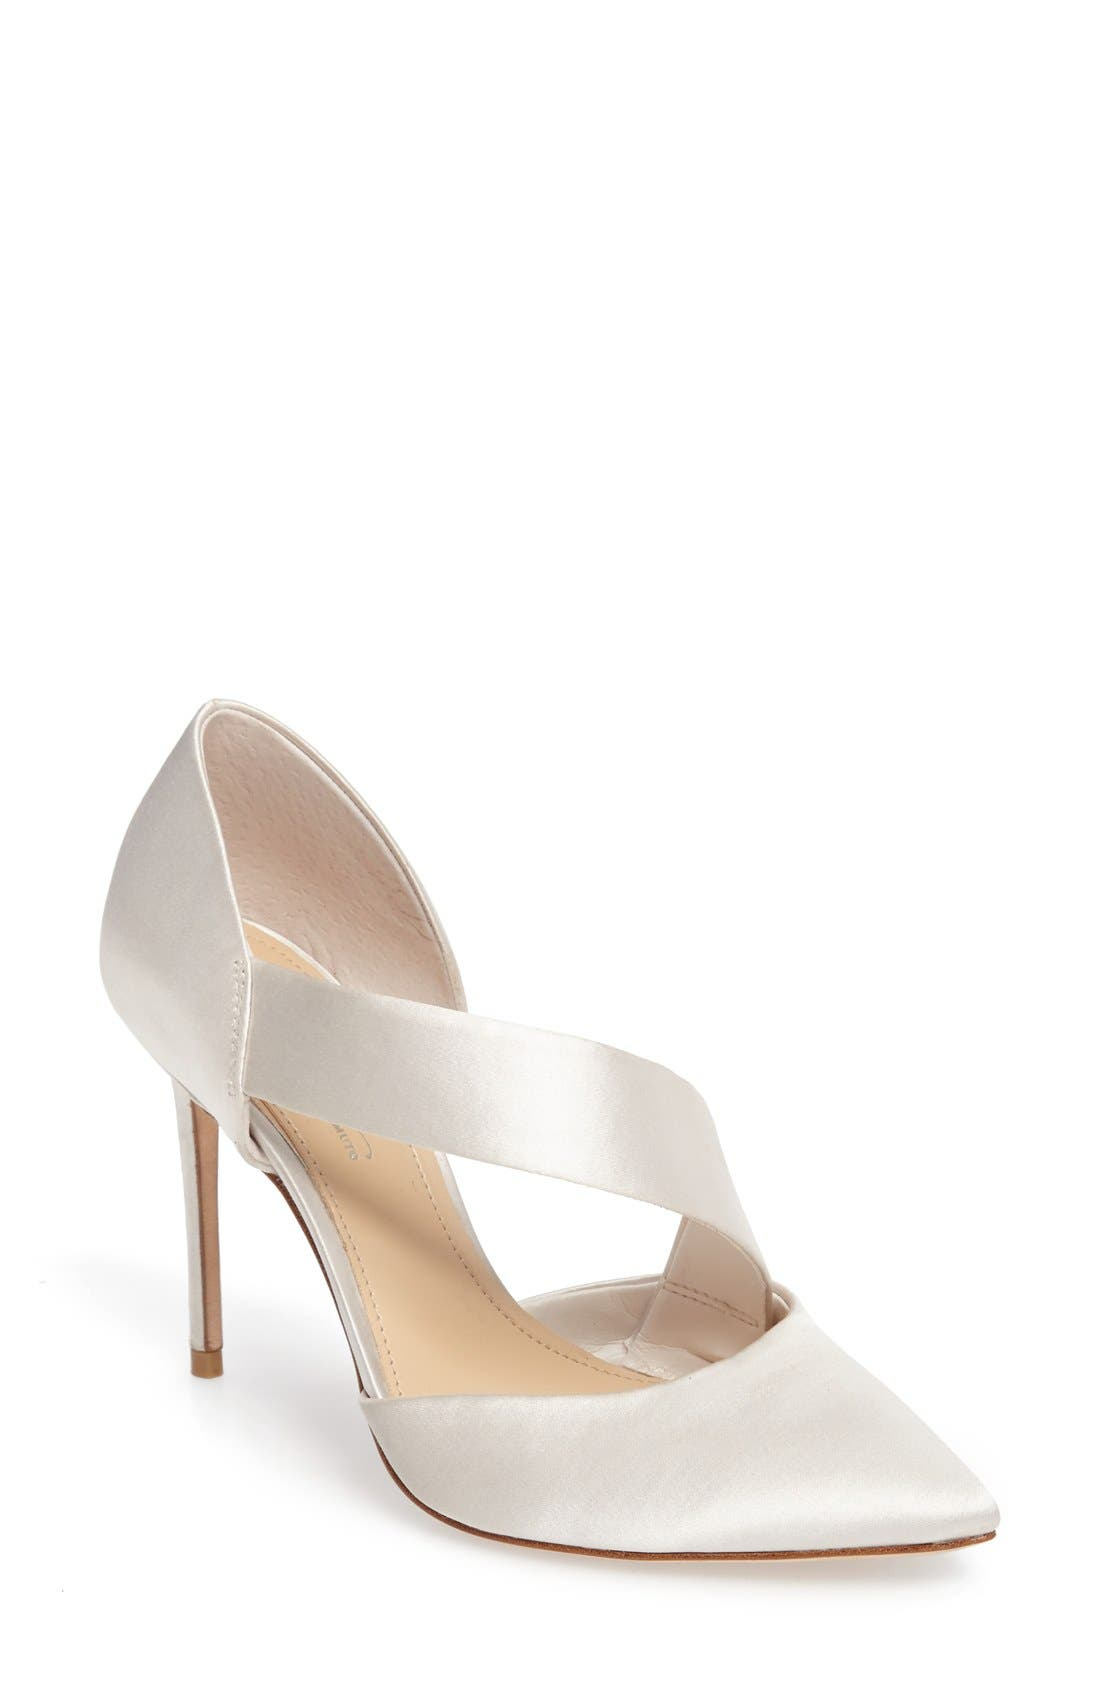 Imagine by Vince Camuto Oya Asymmetrical Pointy Toe Pump (Women)